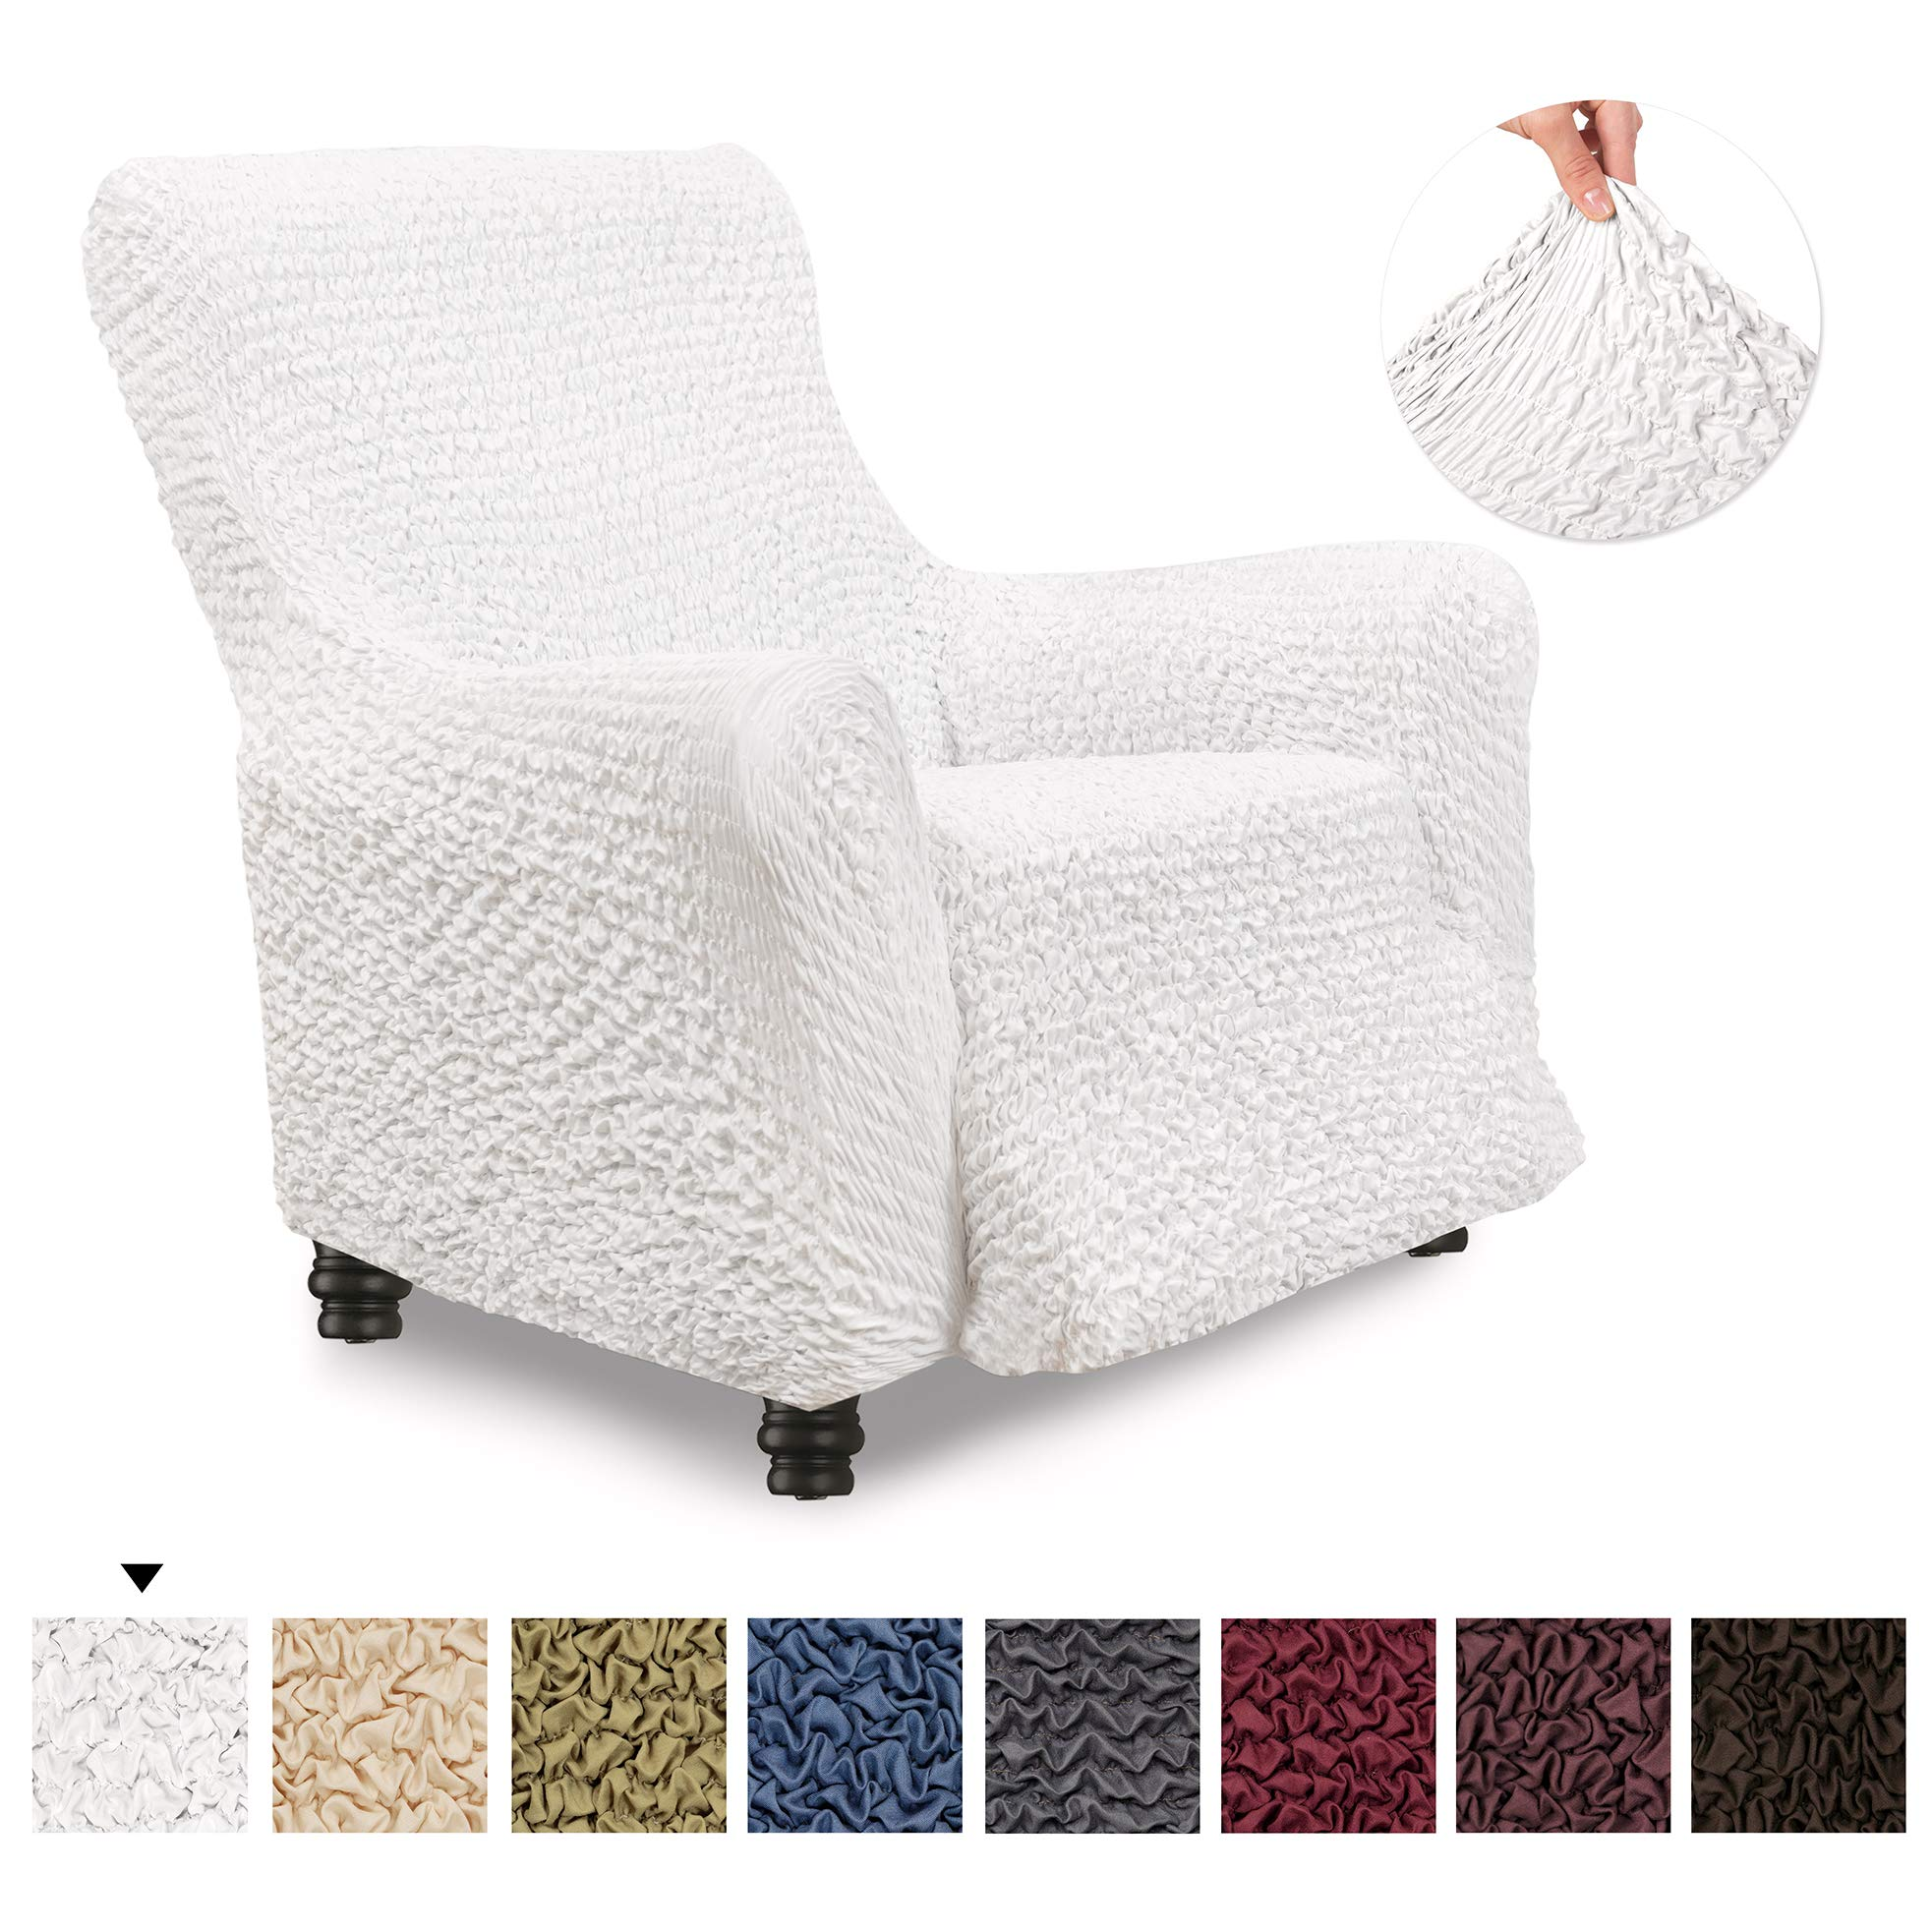 Recliner Cover - Recliner Chair Cover - Recliner Slipcover - Soft Polyester  Fabric Slipcover - 1 d17603a0c2